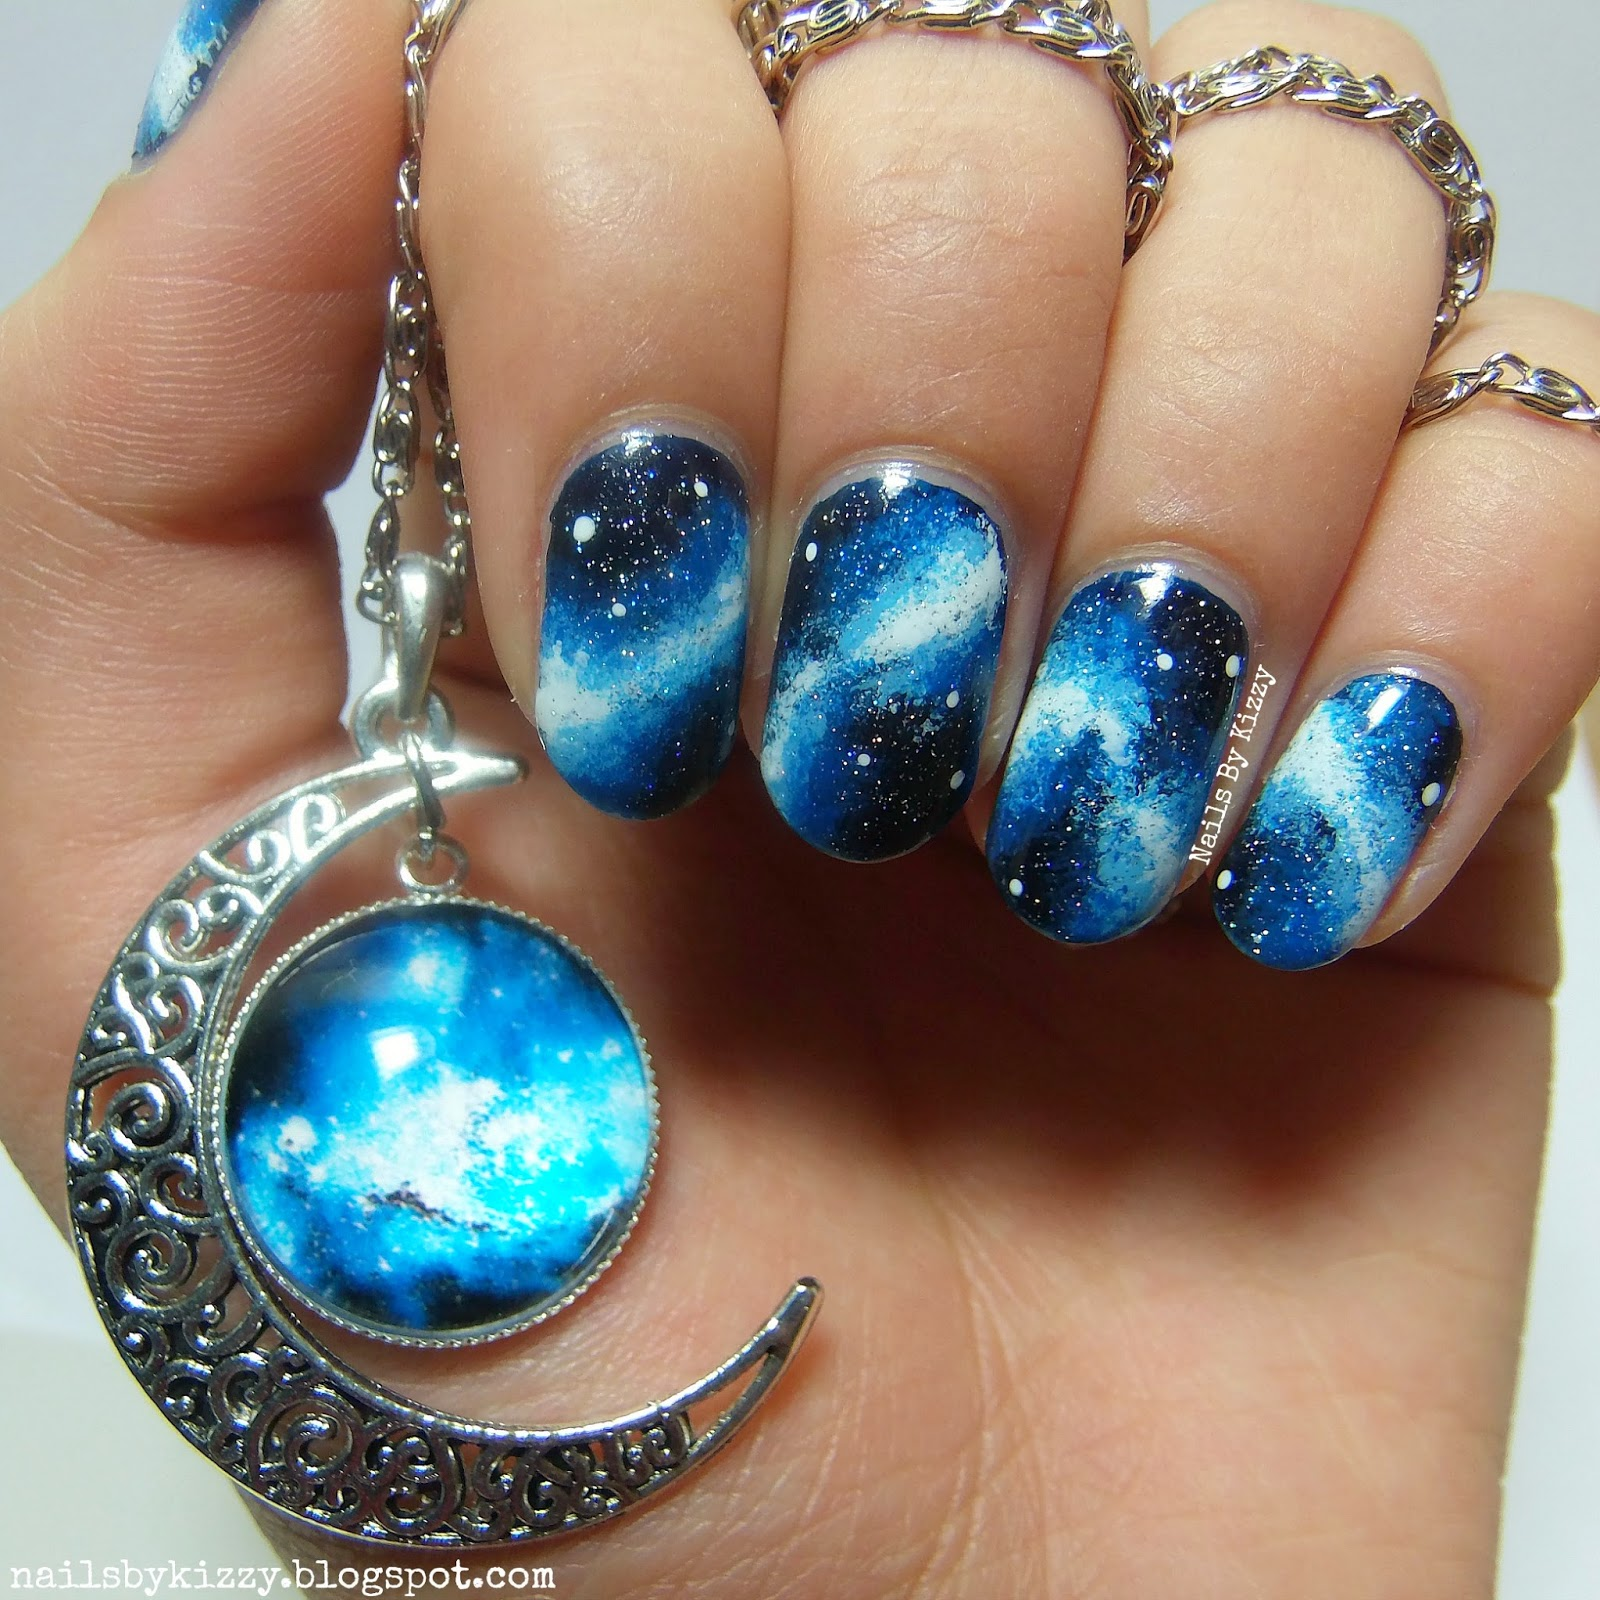 Nails By Kizzy: 1 Year Blogiversary - Galaxy Nails!